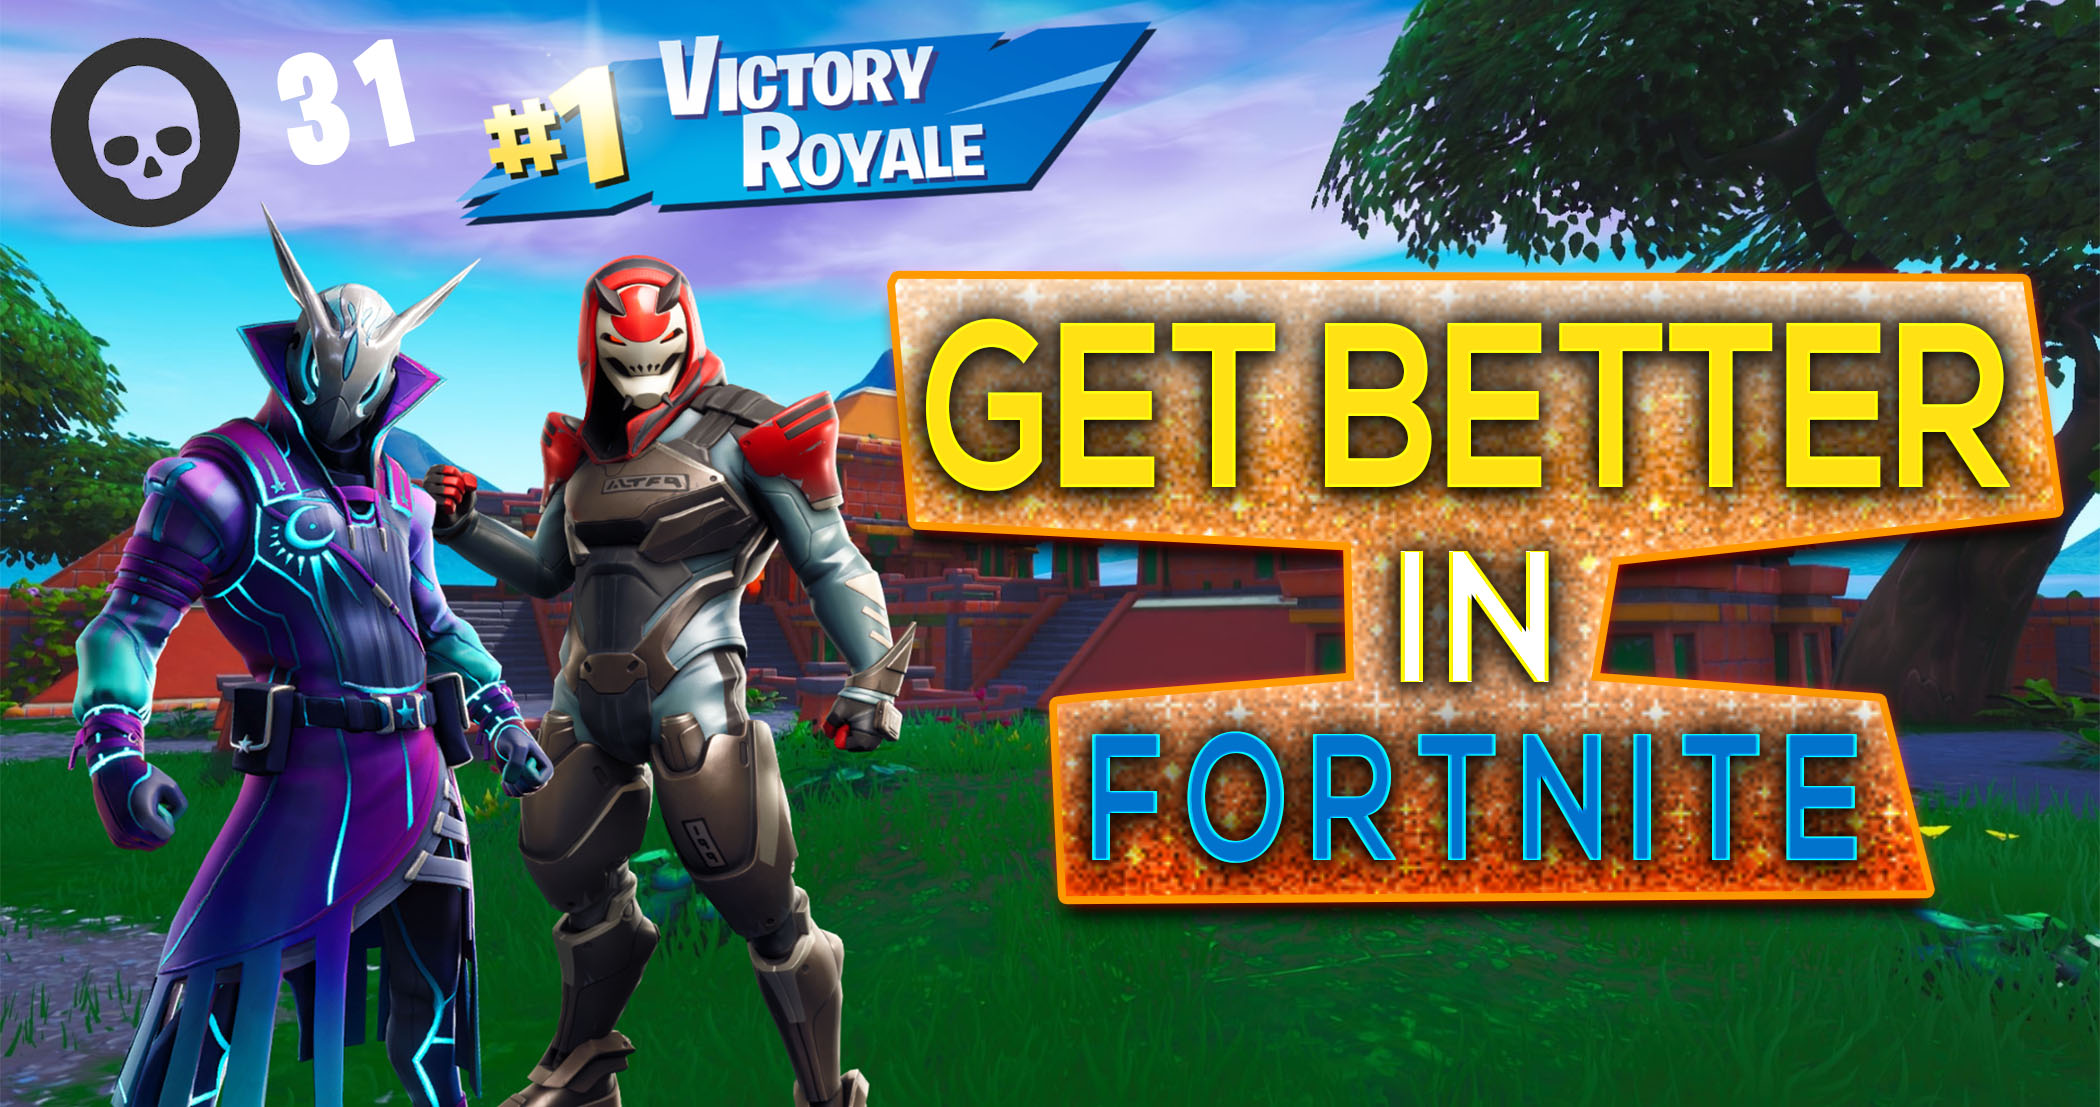 Better in fortnite